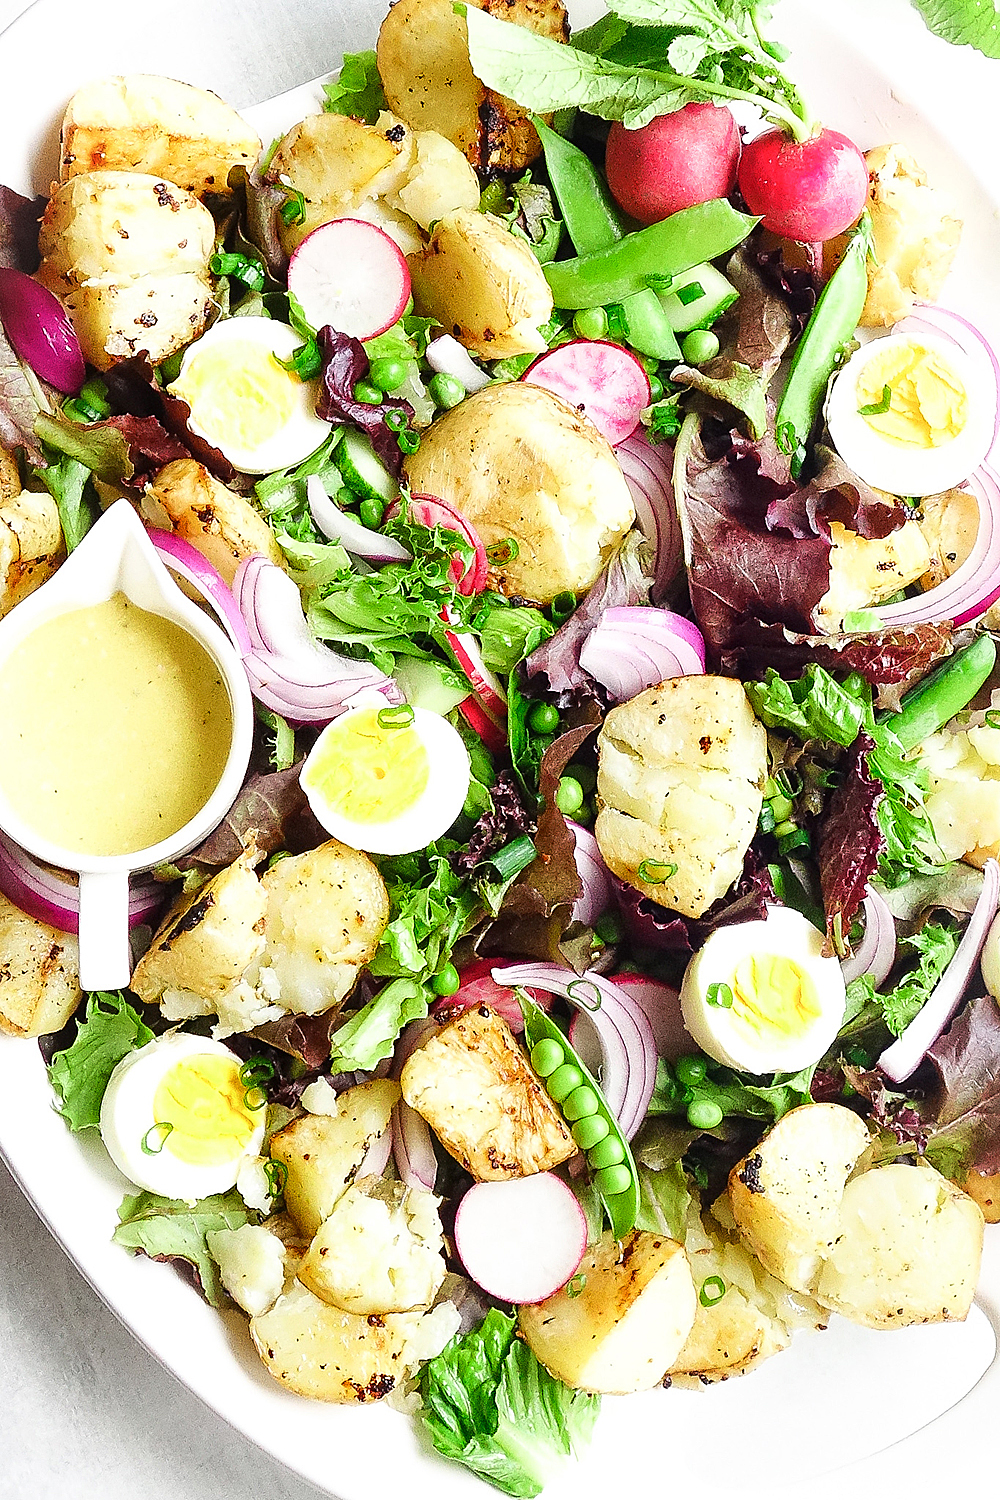 The Grateful Plate smashed potato salad - TRM.jpg